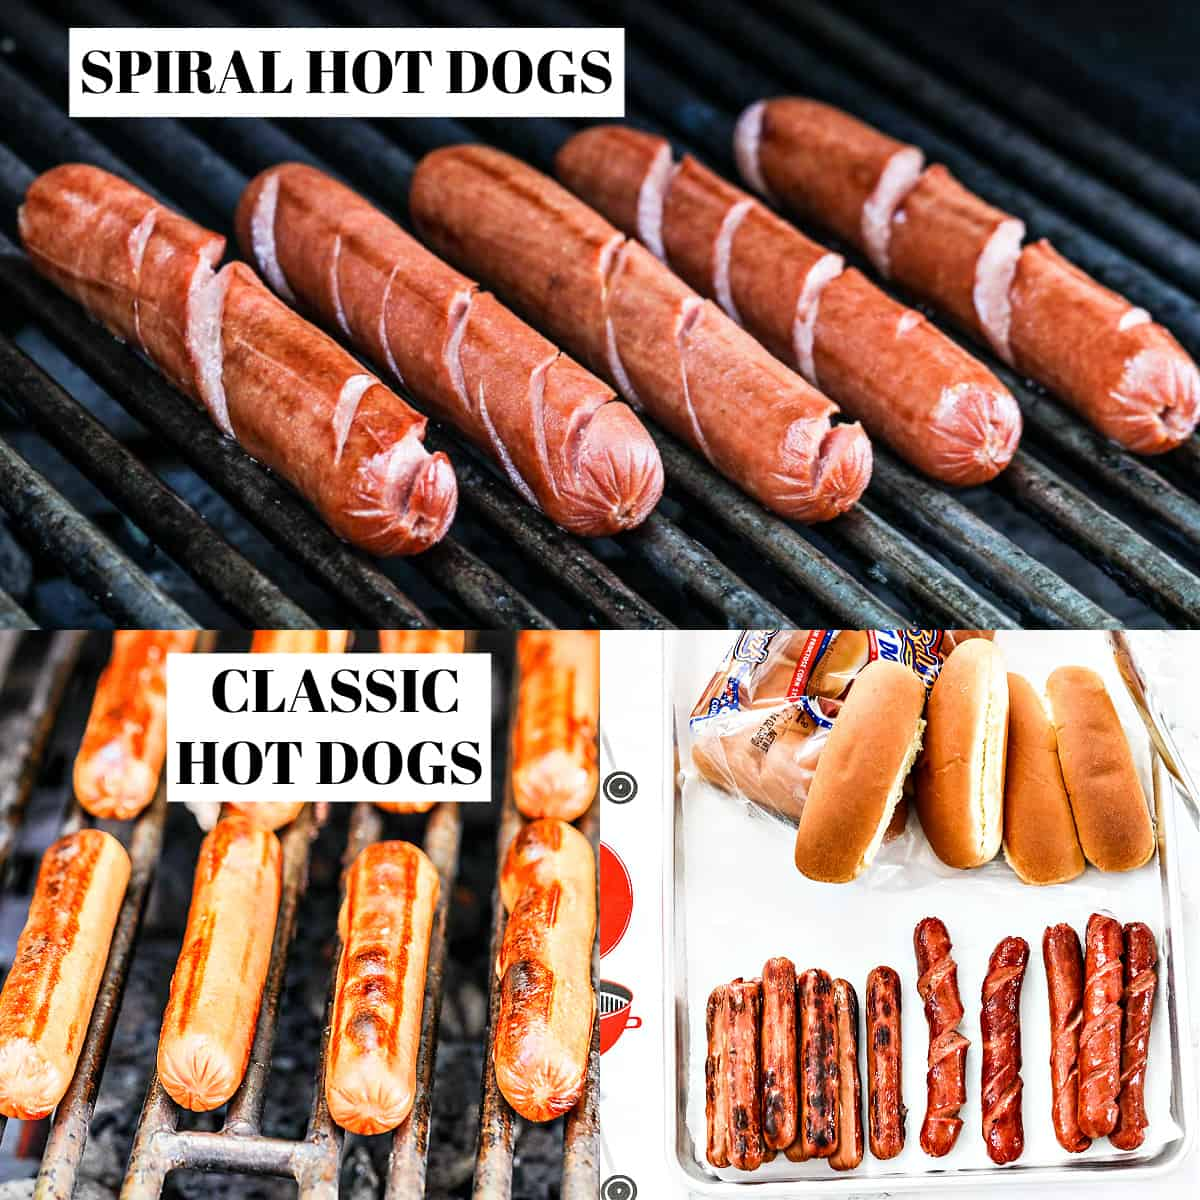 An outdoor grill with spiral cut hot dogs and regular hot dogs grilling and grilled on a tray with hot dog buns.